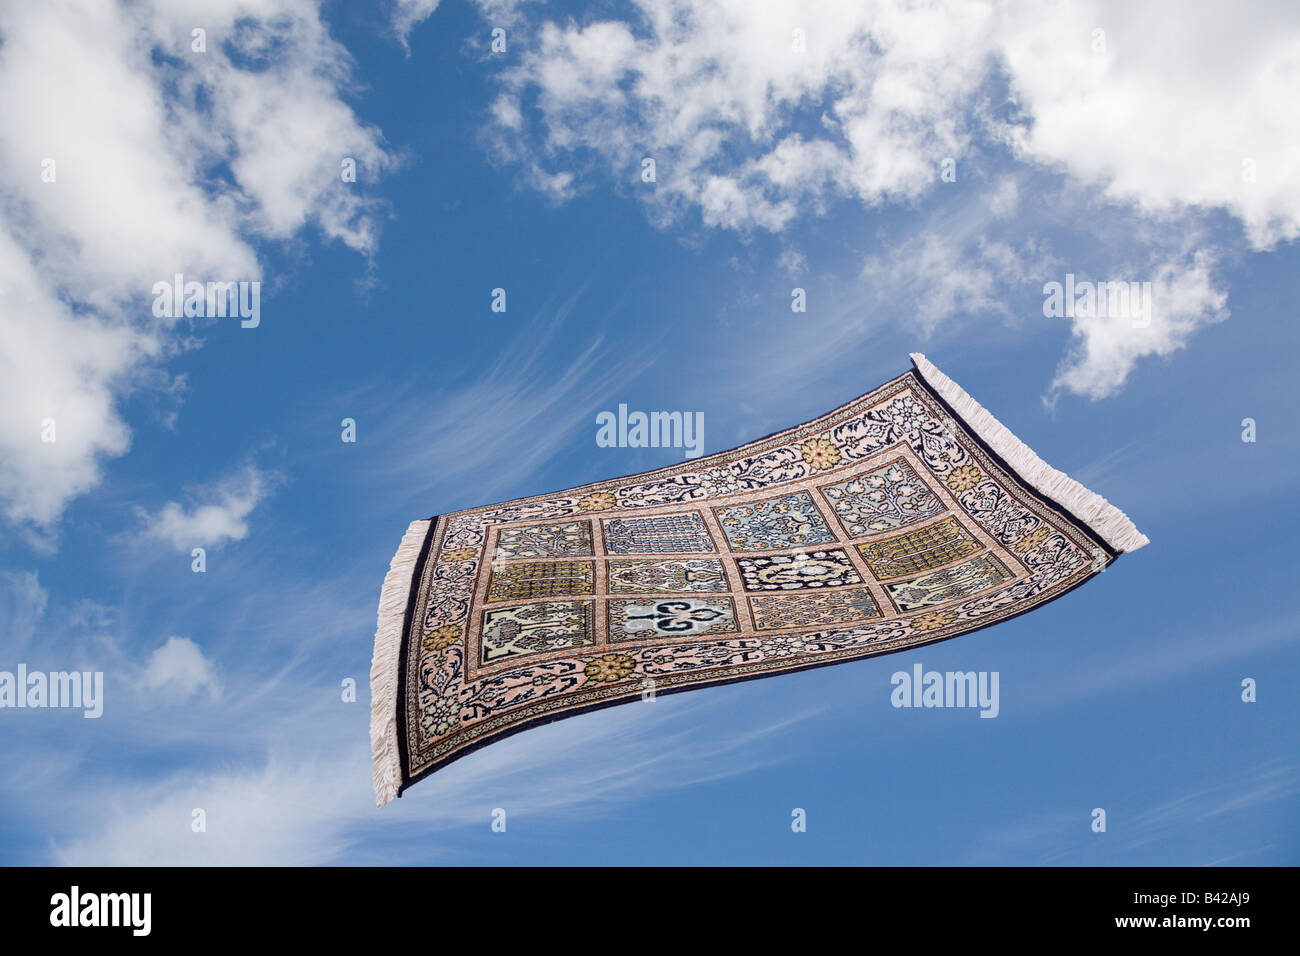 Frau Fliegender Teppich Magic Carpet Flying Across Blue Sky With White Clouds